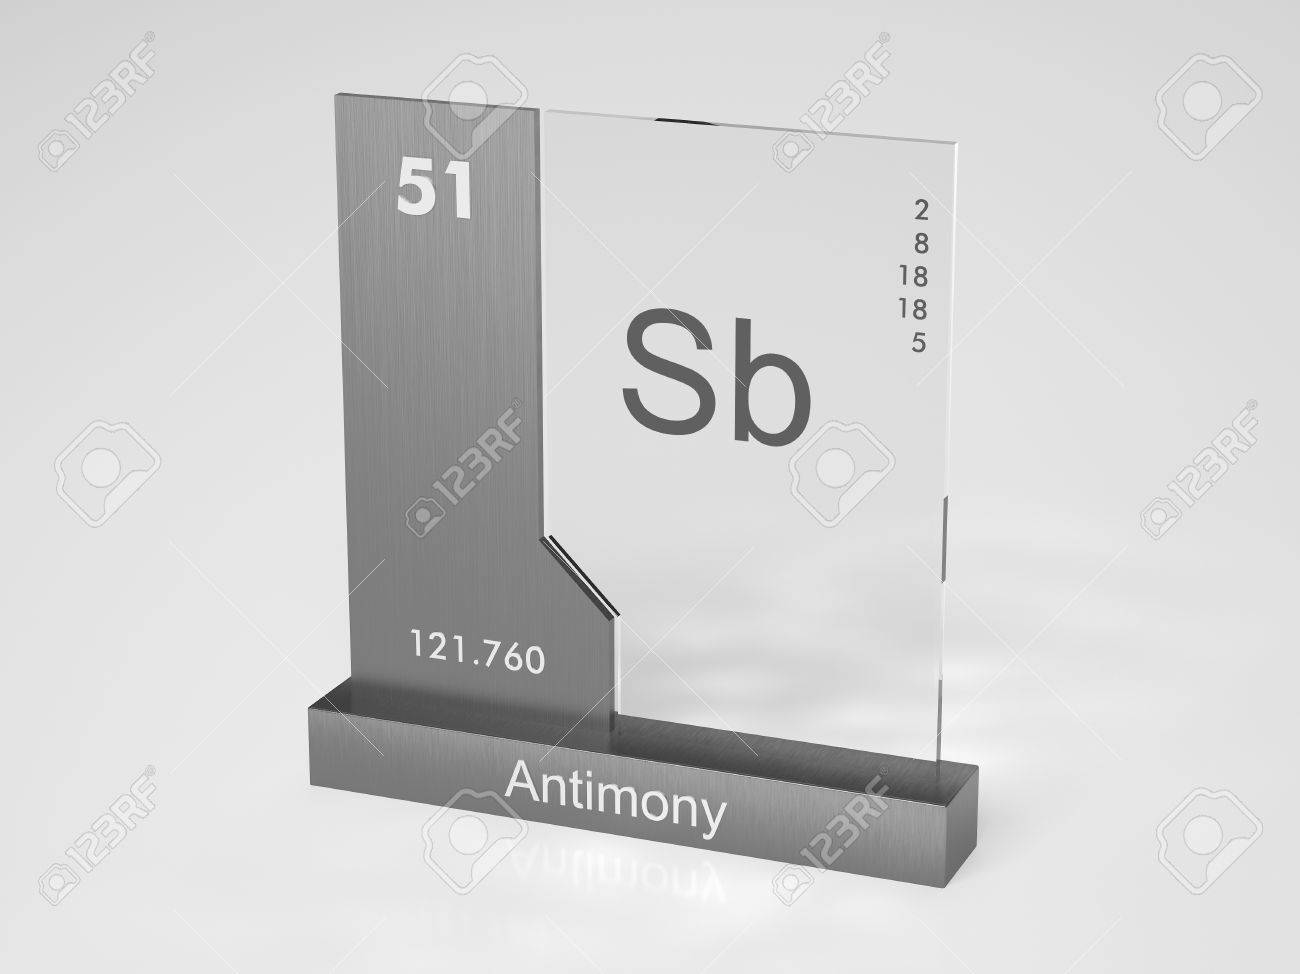 Antimony symbol sb chemical element of the periodic table antimony symbol sb chemical element of the periodic table stock photo 10470020 biocorpaavc Images